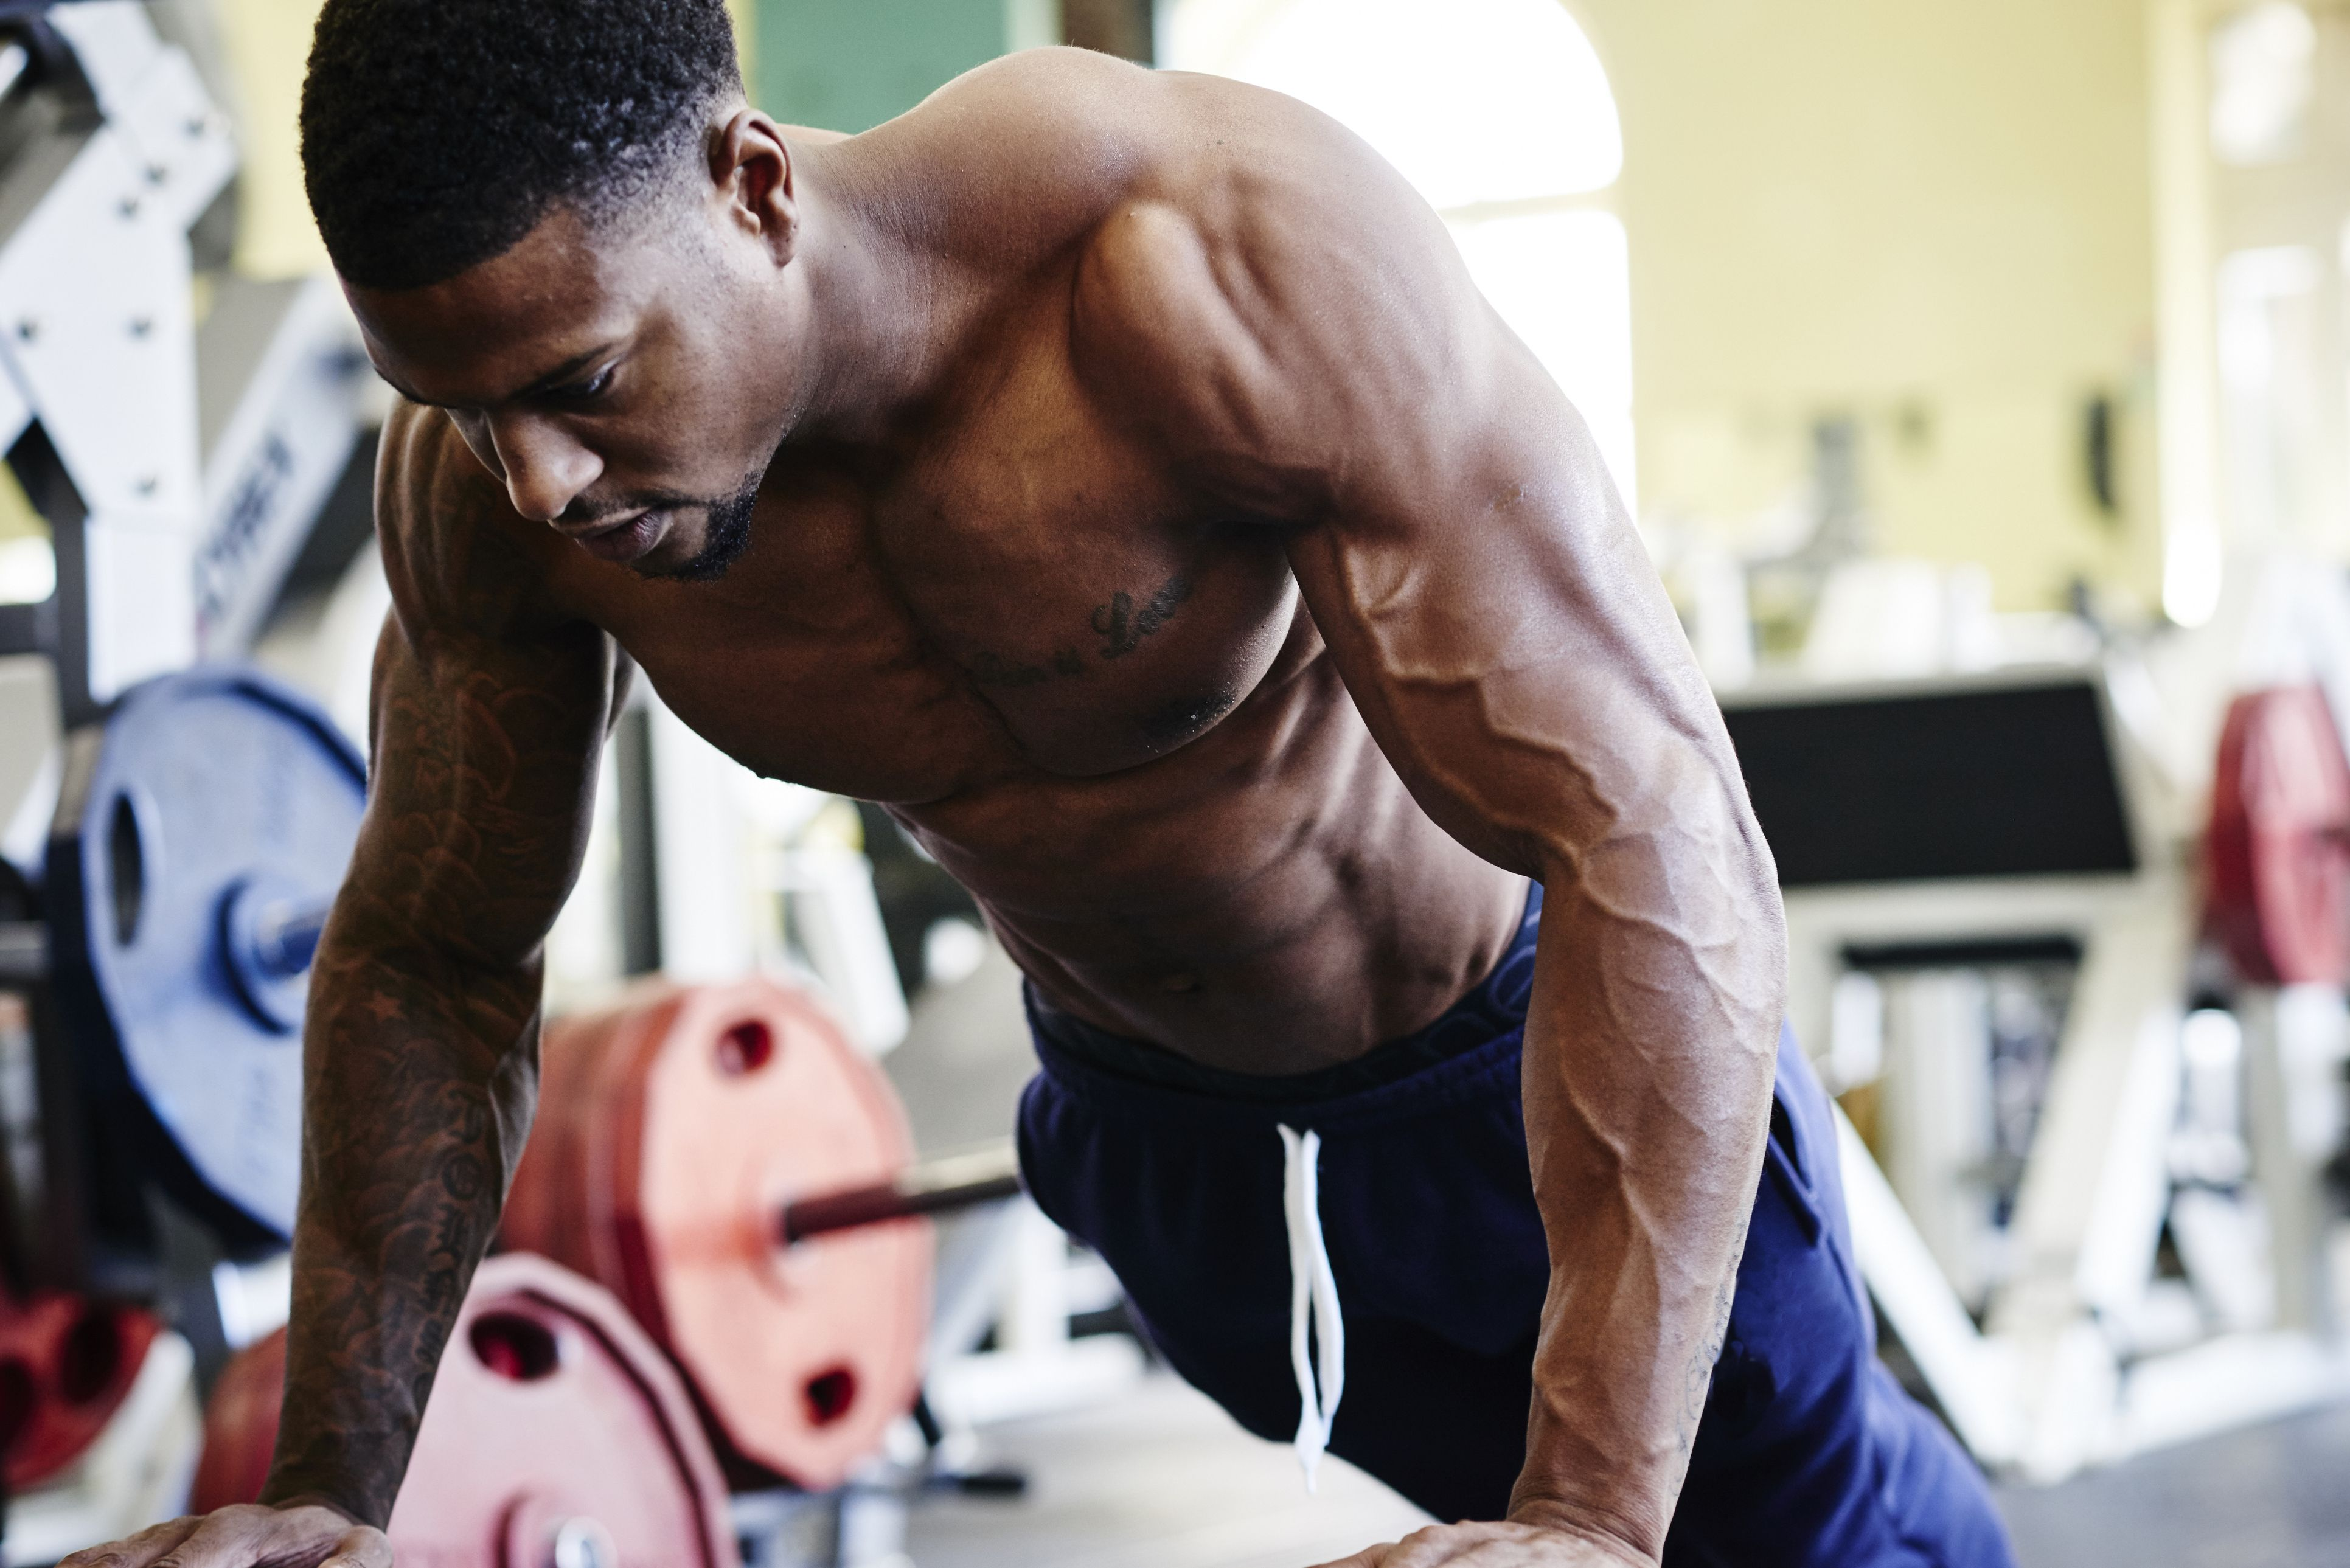 The 1-Month Workout Plan to Get Jacked - Old School Muscle